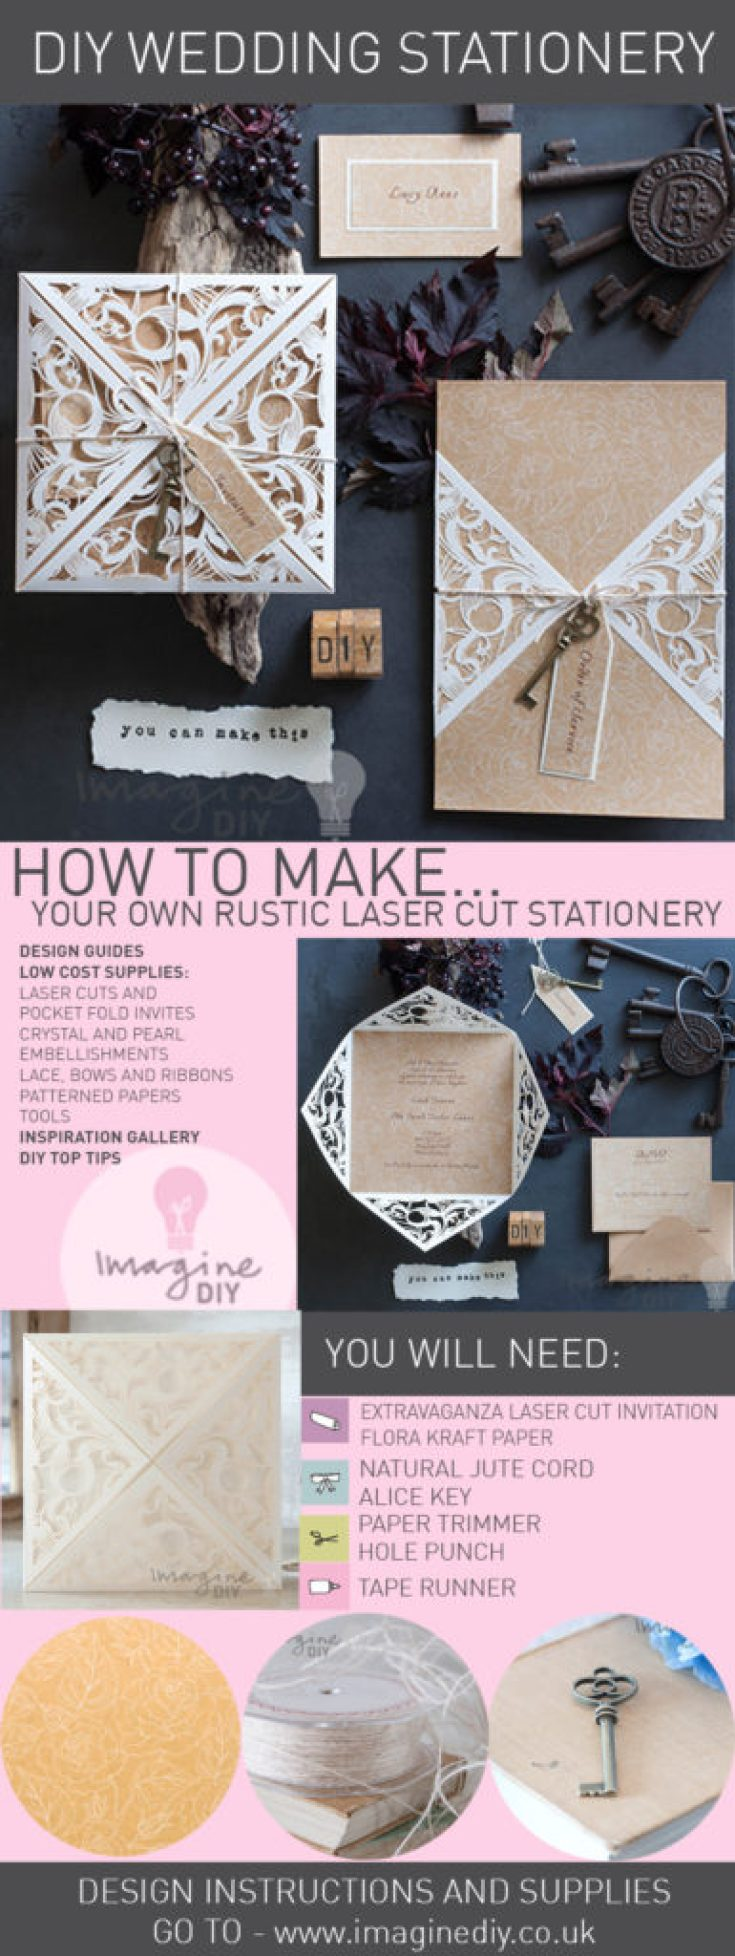 How to makestic laser cut wedding stationery imagine diy rustic laser cut wedding stationery junglespirit Images